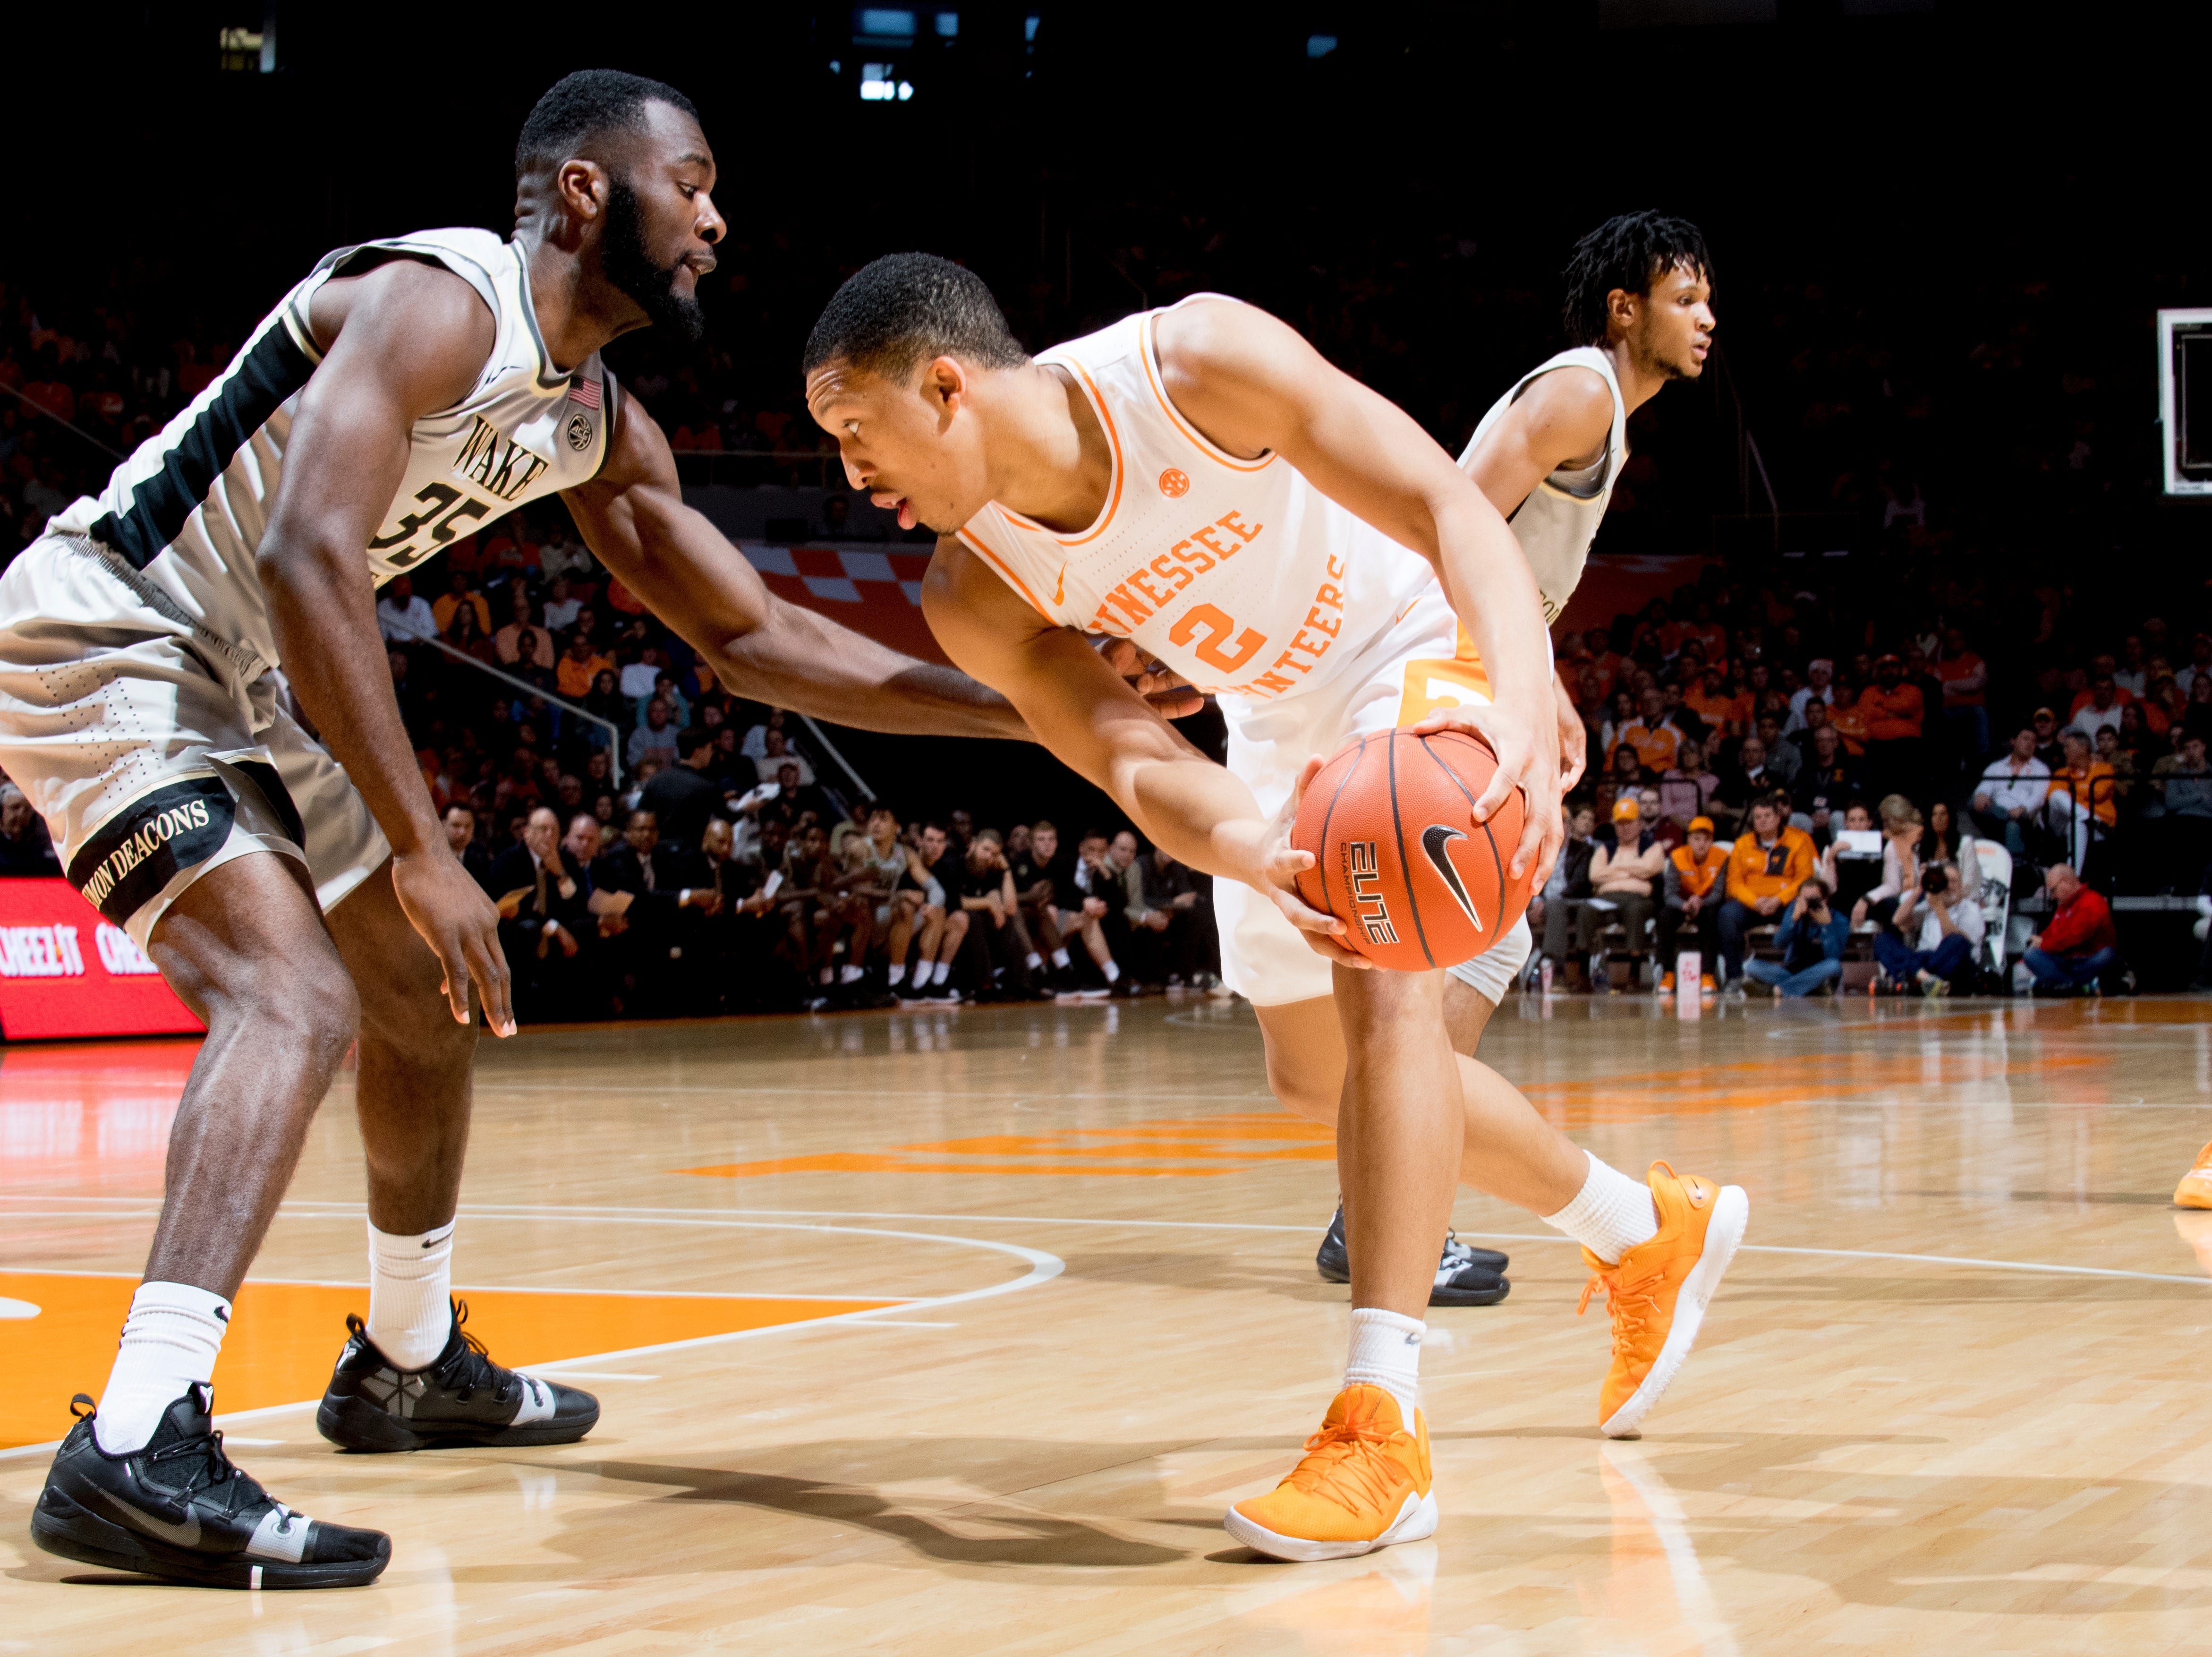 Tennessee forward Grant Williams (2) looks for a way around Wake Forest forward Ikenna Smart (35) during a game between Tennessee and Wake Forest at Thompson-Boling Arena in Knoxville, Tennessee on Saturday, December 22, 2018.